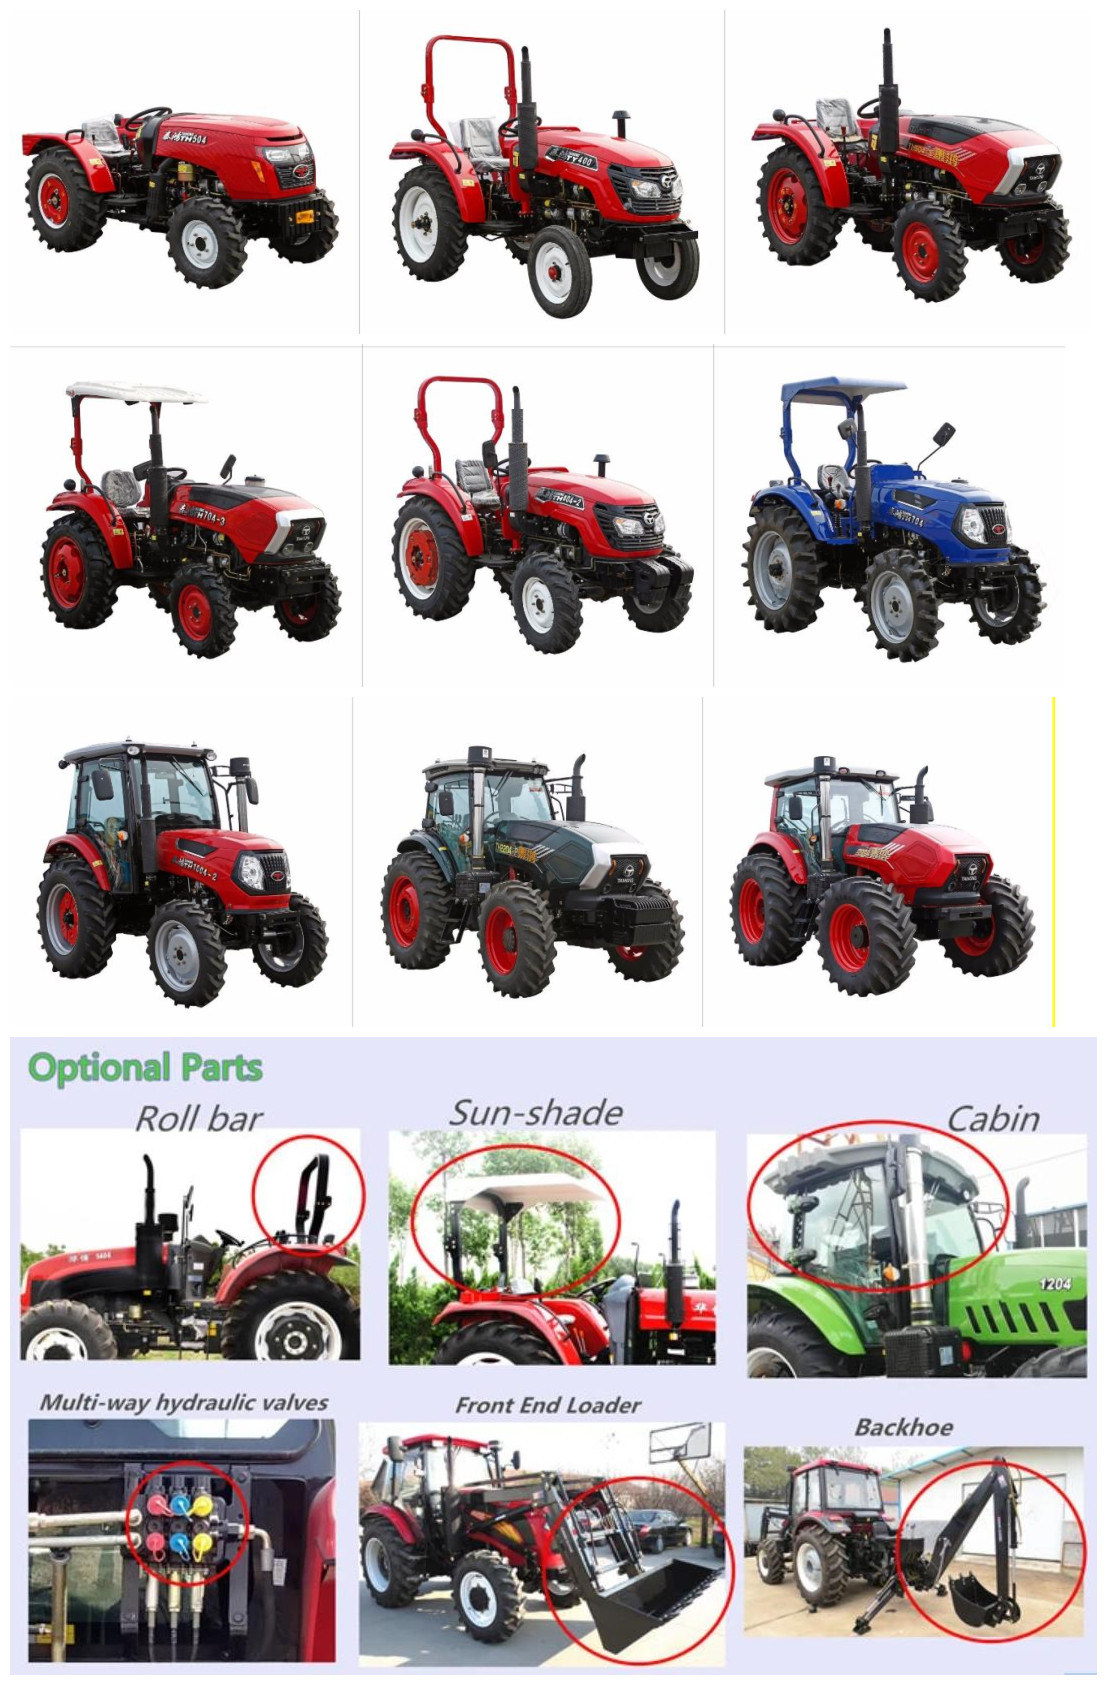 4x4 Compact Tractors For Sale : compact, tractors, China, Cheap, Tractor, Tractor,, Machinery, Made-in-China.com